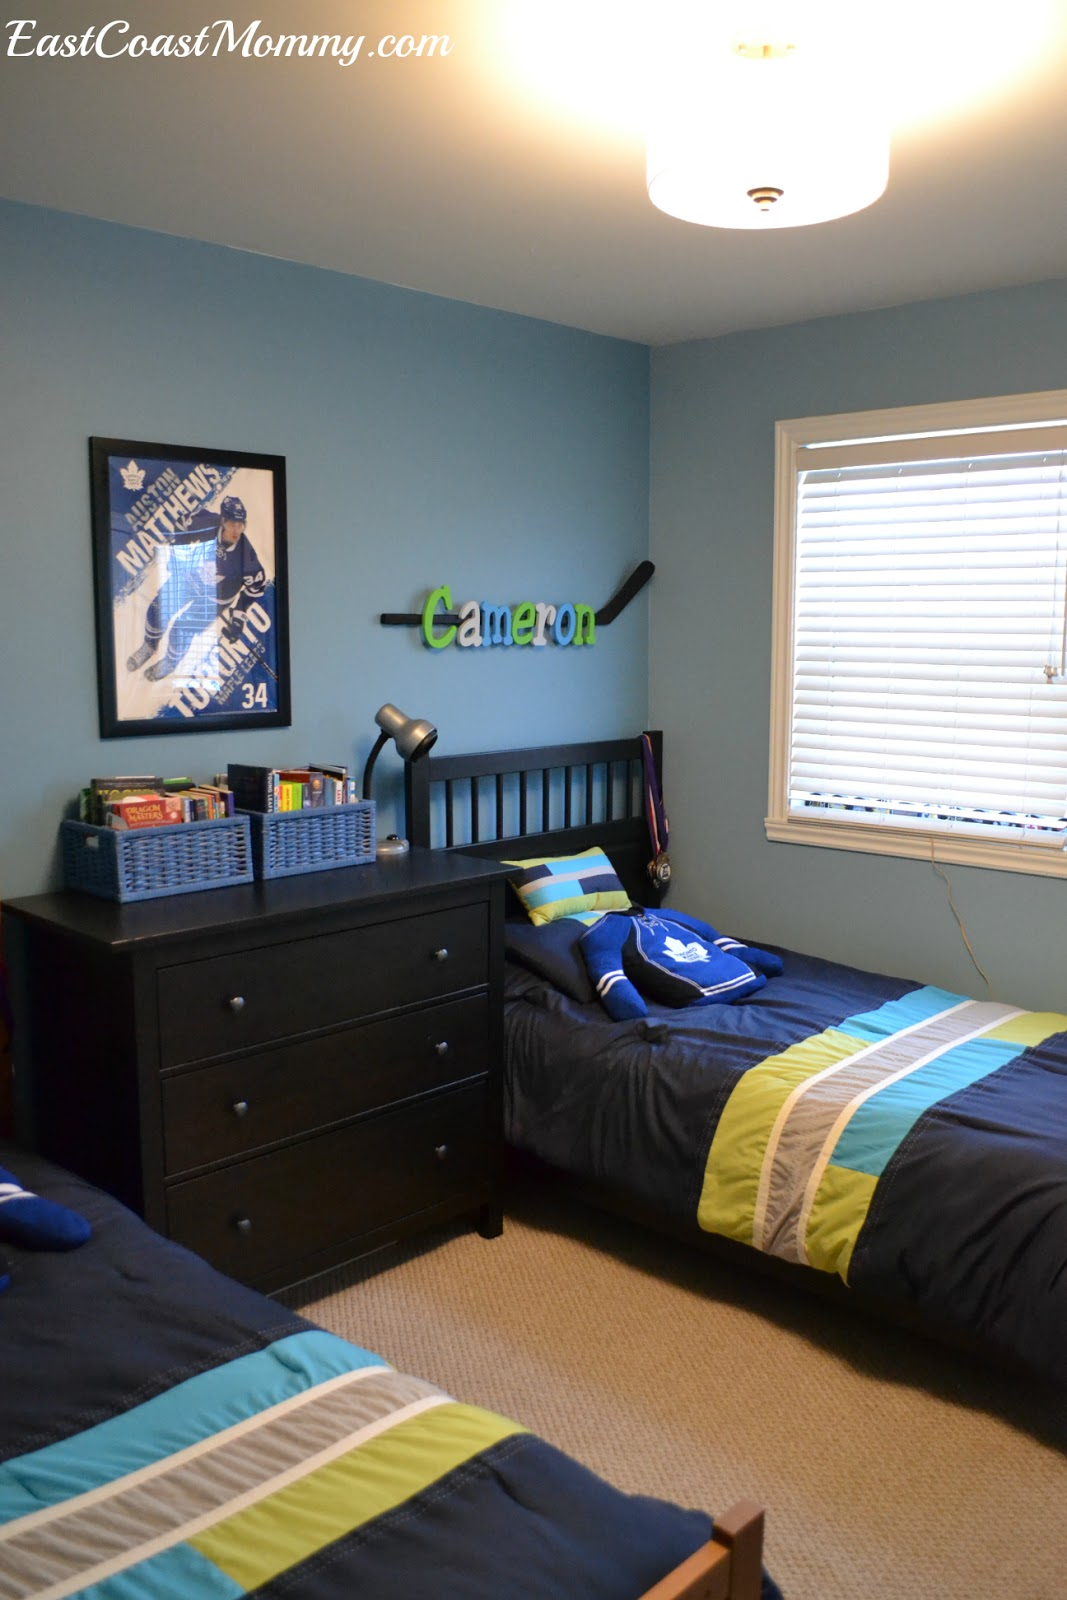 They Have Matching Bedding, But I Labelled Each Side With A Hockey Stick  Containing Each Of Their Names. (You Can Find A Step By Step Tutorial For  The ...